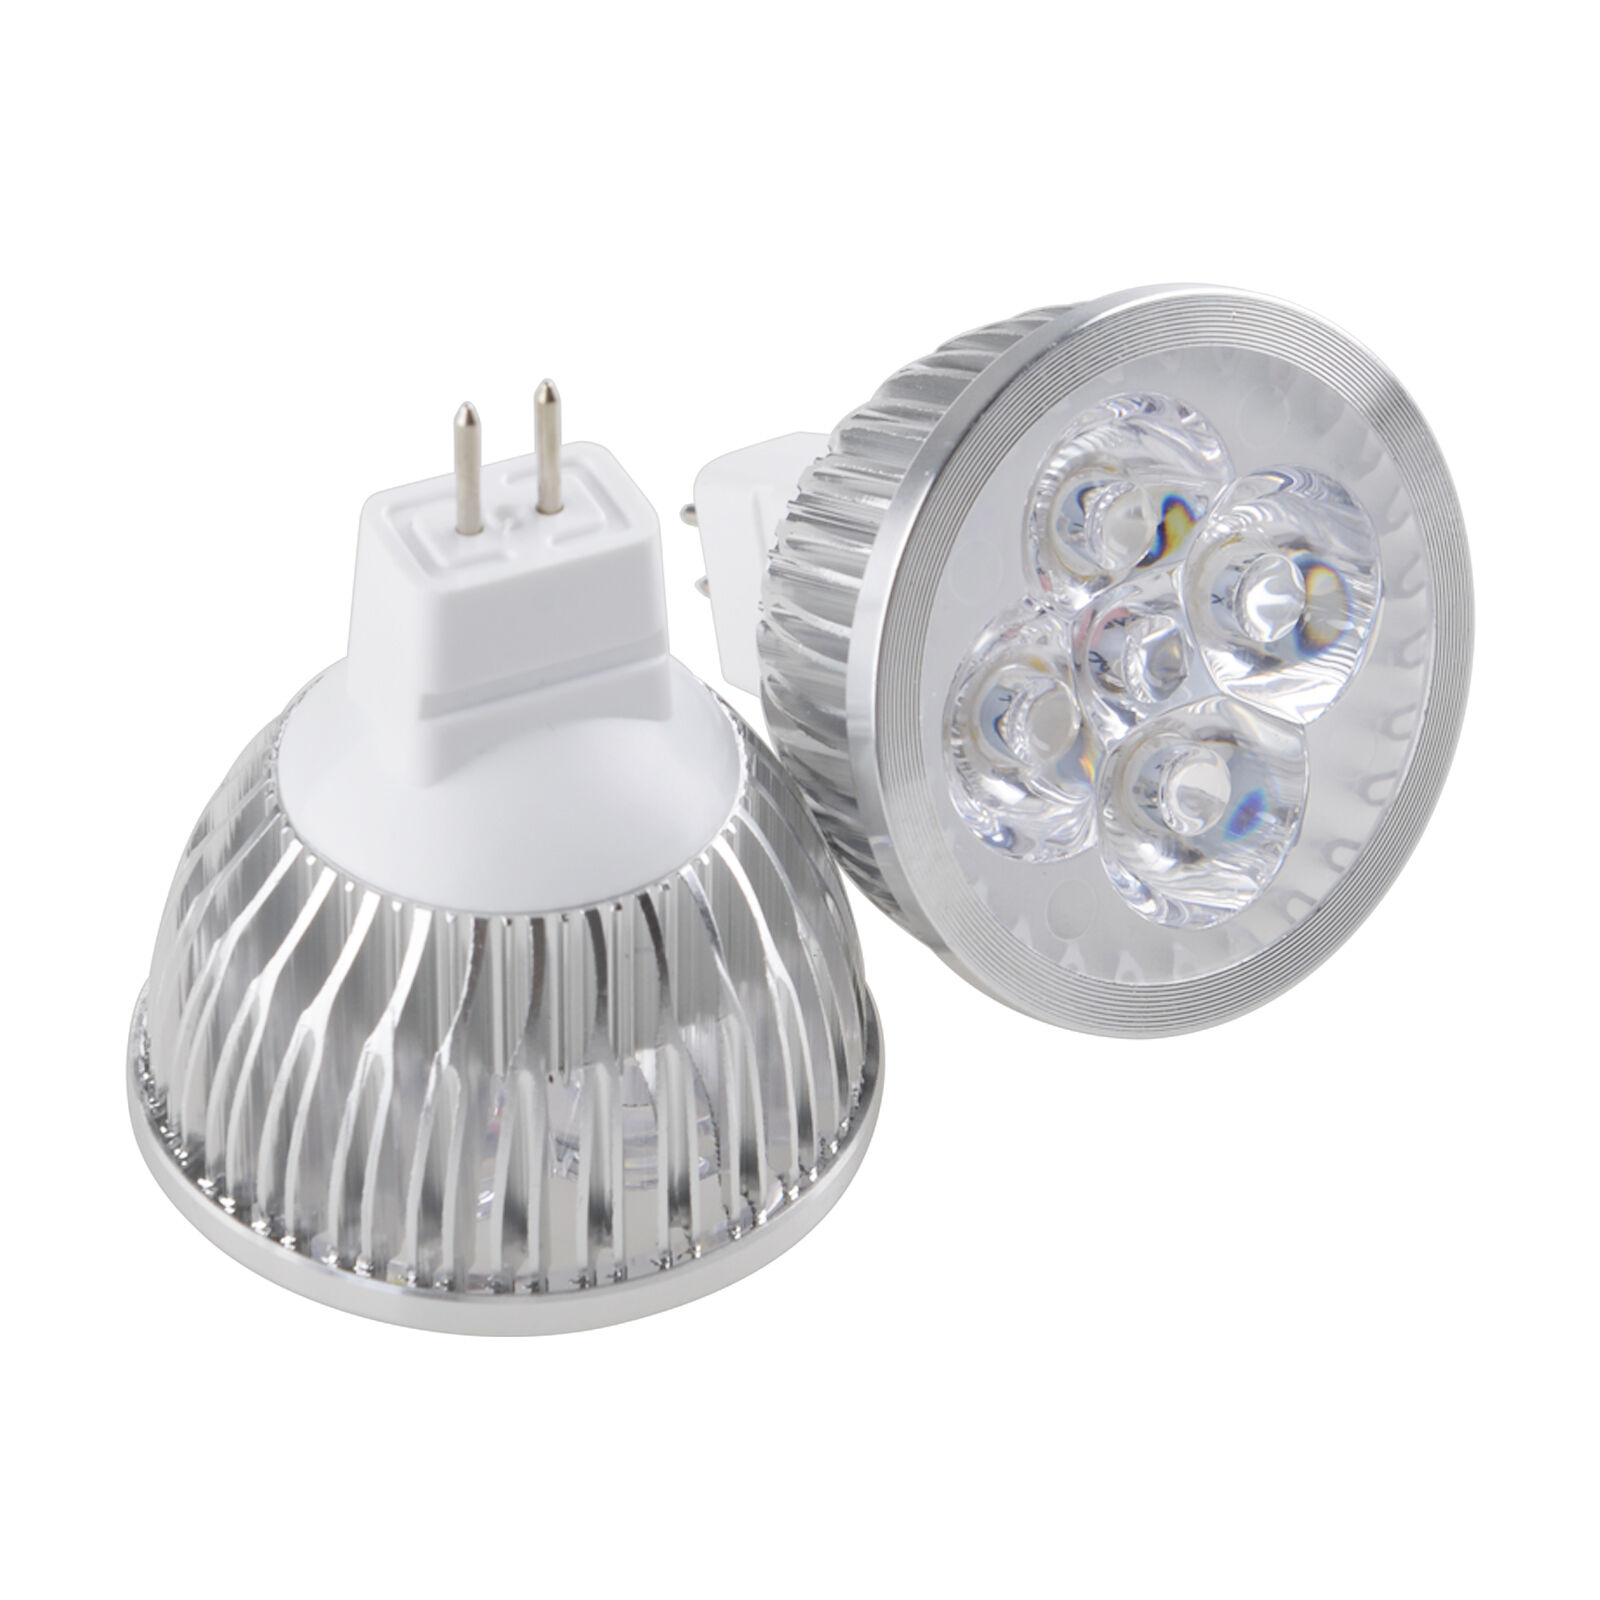 Mr16 Led Voltage: Dimmable 9W 12W E27 MR16 GU10 LED Bulb Lamp Home Spot Down